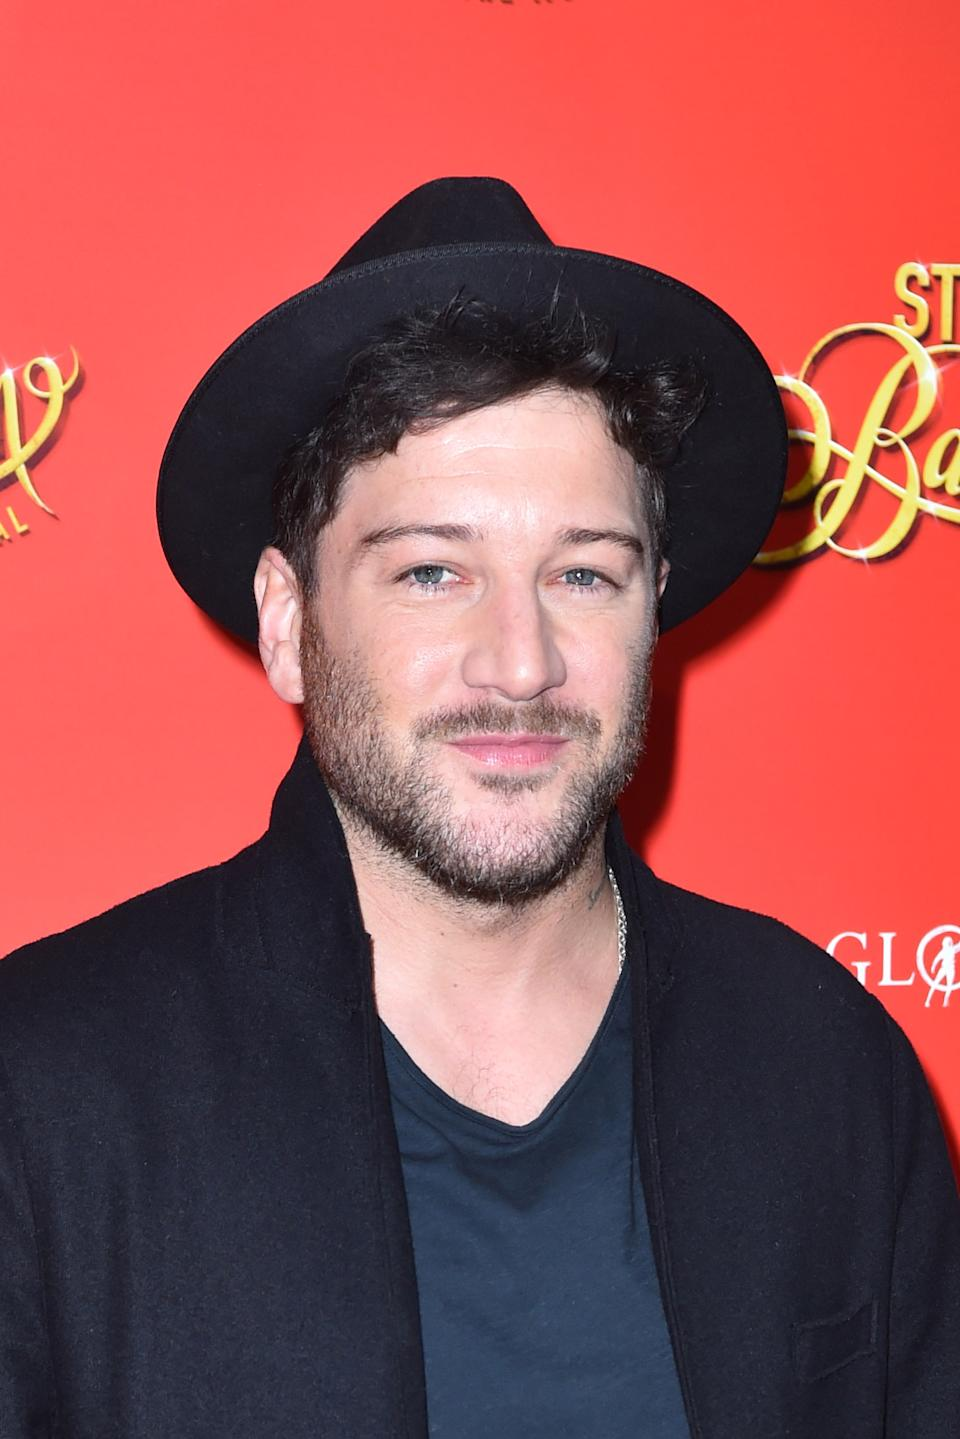 Matt Cardle attending the press night of Strictly Ballroom the Musical, at the Piccadilly Theatre in London. (Photo by Matt Crossick/PA Images via Getty Images)